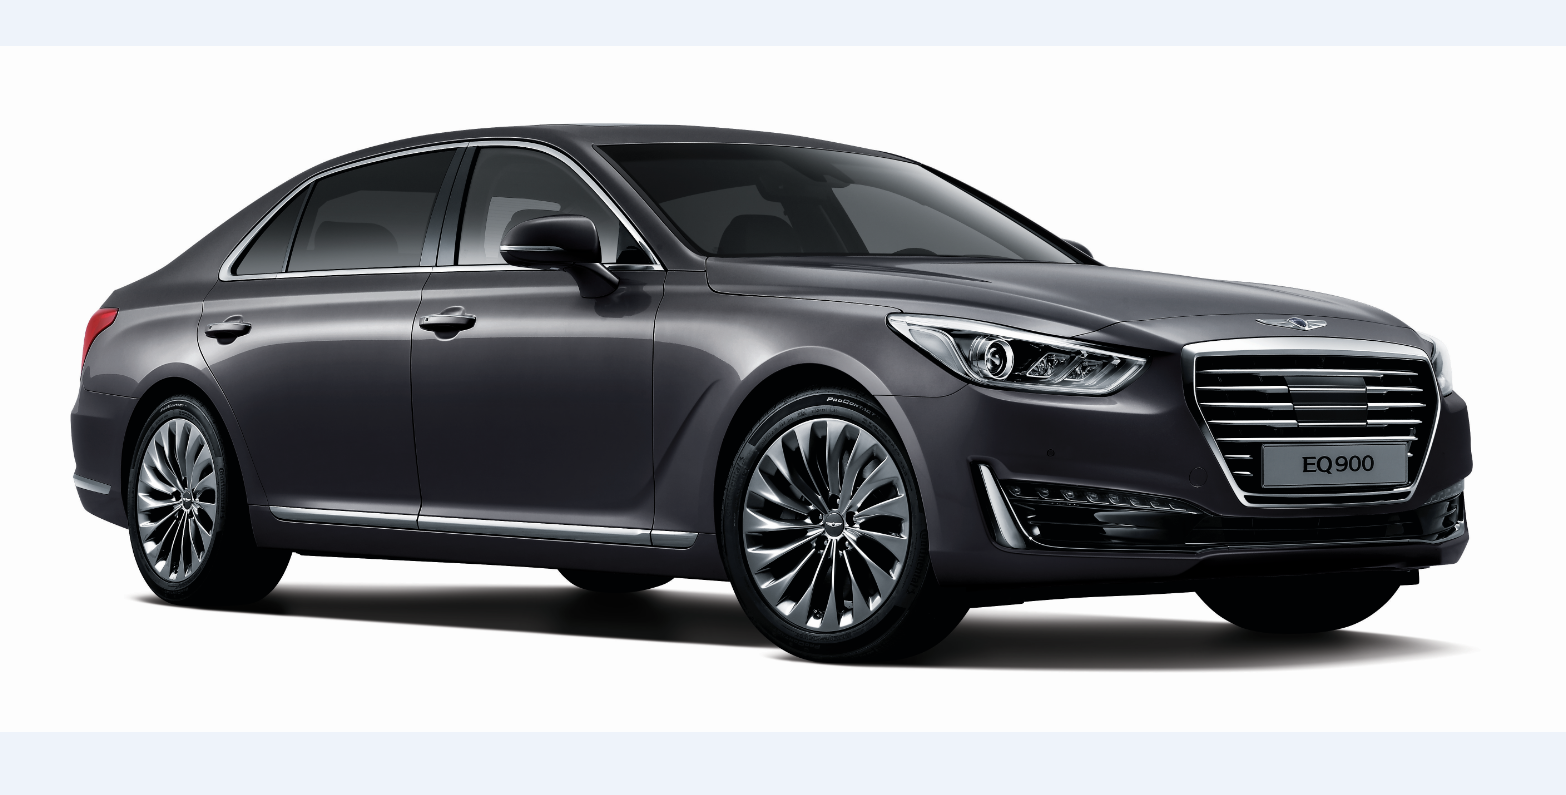 hyundai 39 s genesis brand launches its first model meet the g90 autoevolution. Black Bedroom Furniture Sets. Home Design Ideas